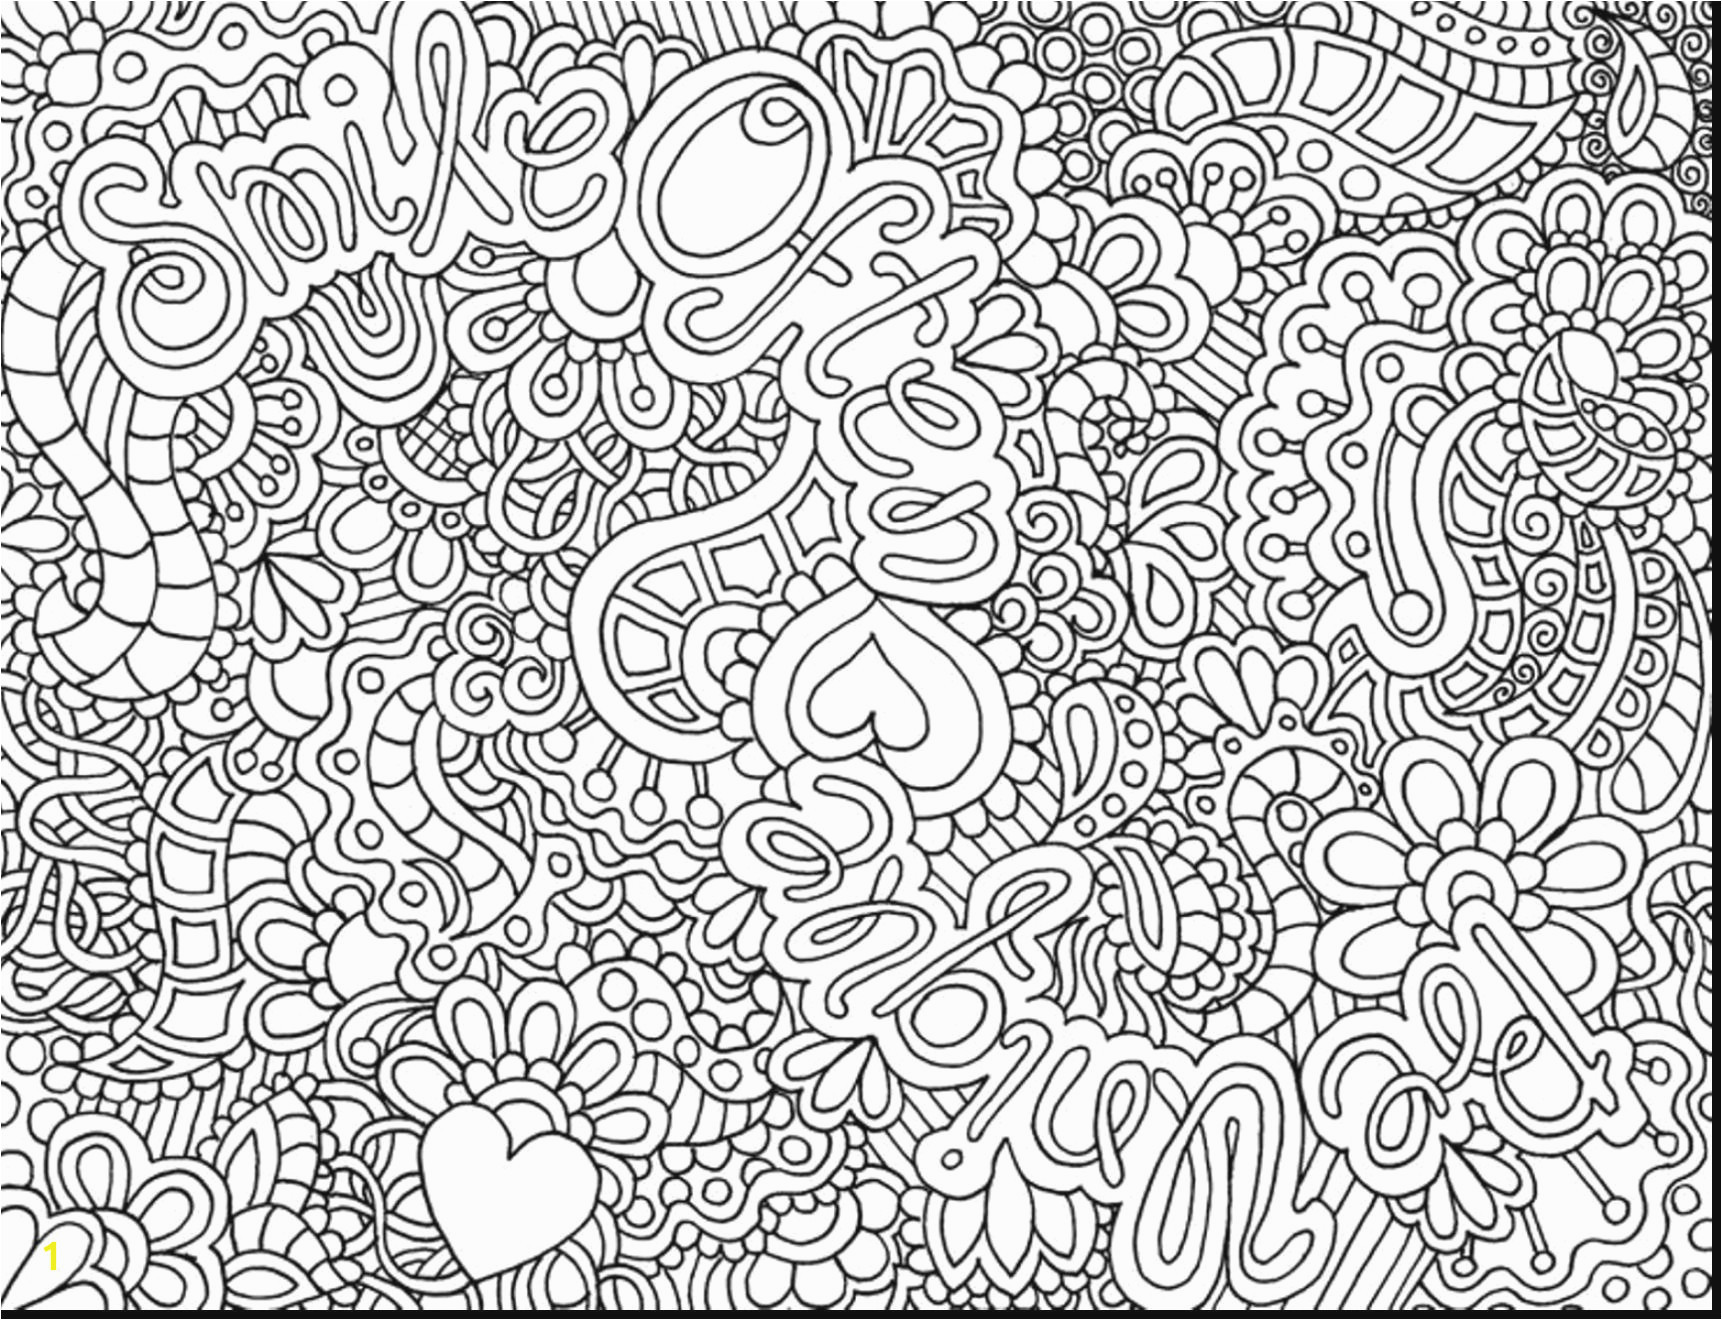 Mandala Coloring Pages Adults Printable Inspirational Free Printable Mandala Coloring Pages for Adults Beautiful Cool Od